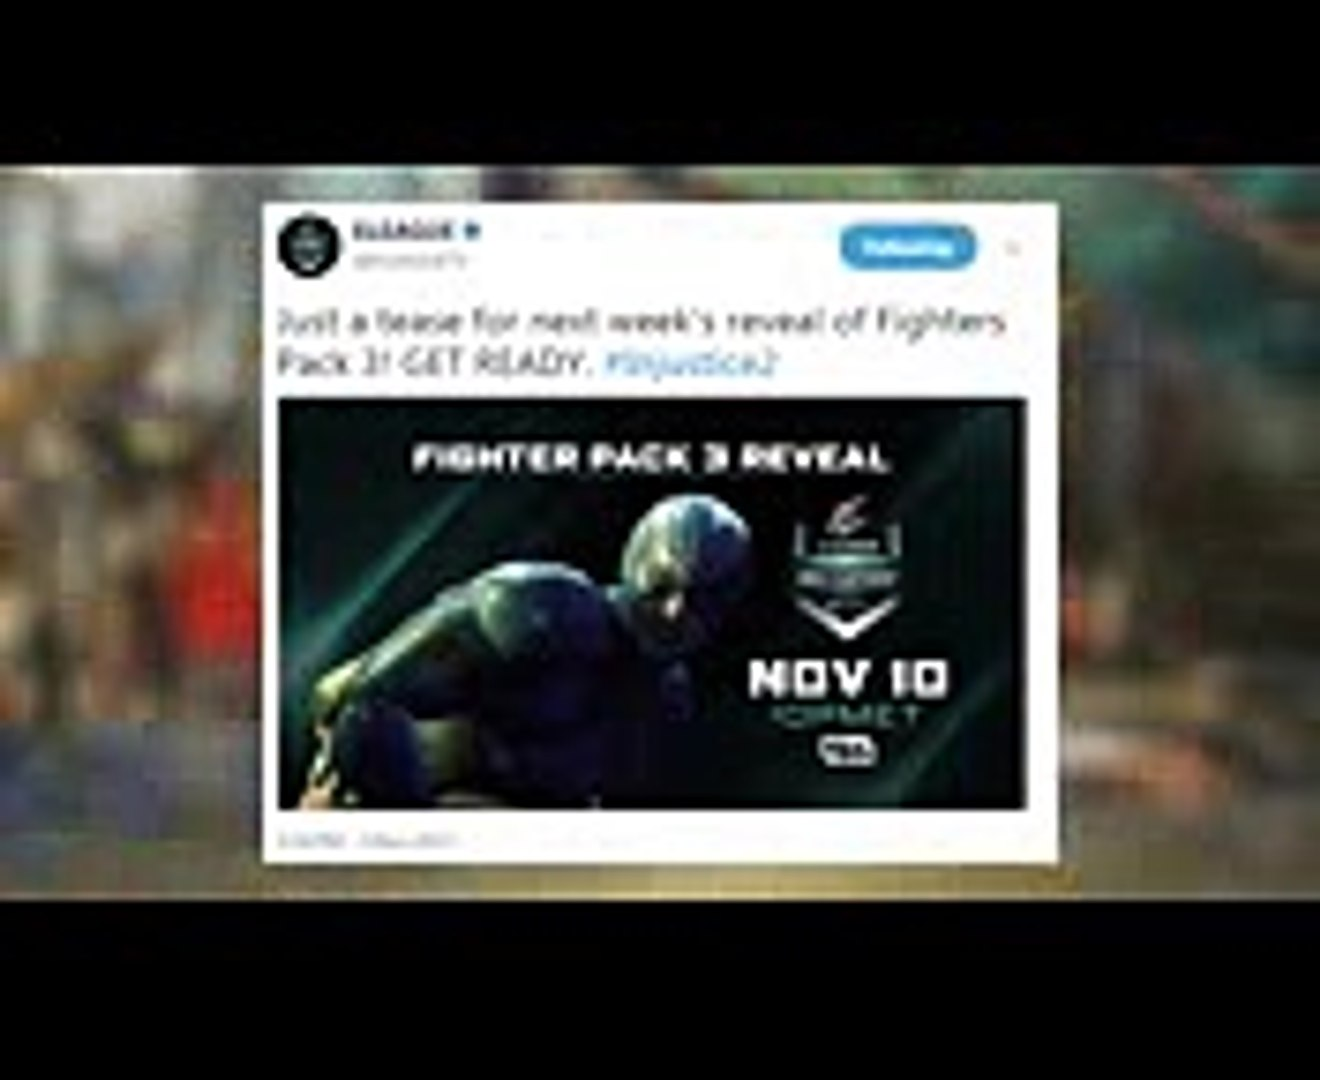 Injustice 2 Fighter Pack 3 Trailer Reveal Date ANNOUNCED! (Injustice 2 Fighter Pack 3 DLC)